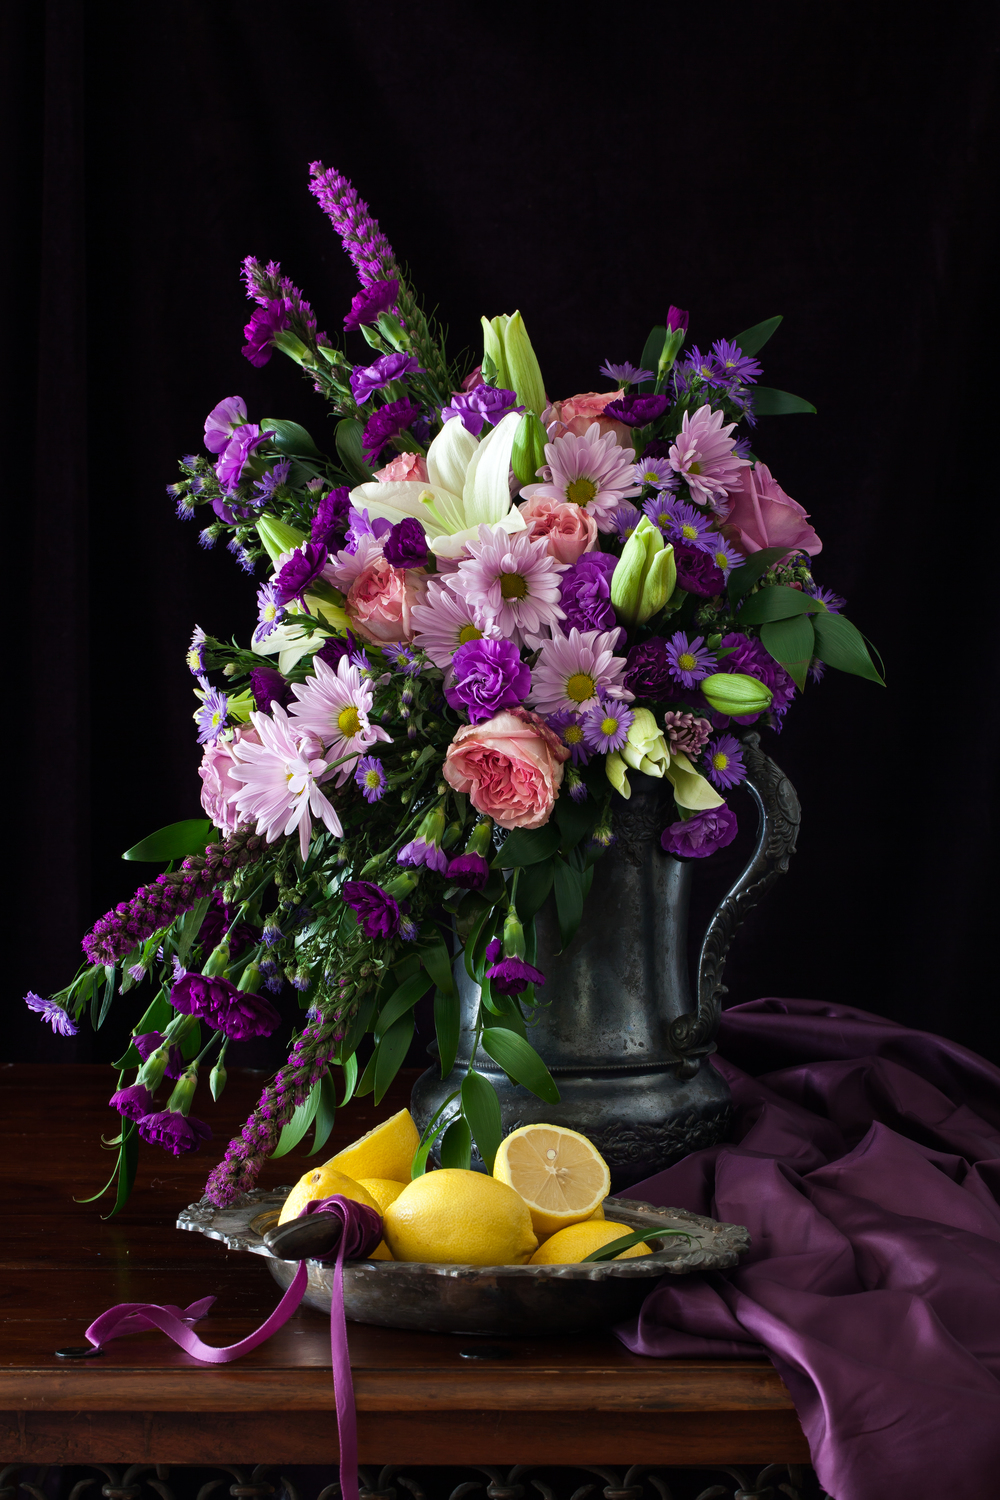 Still life with purple flowers and lemons